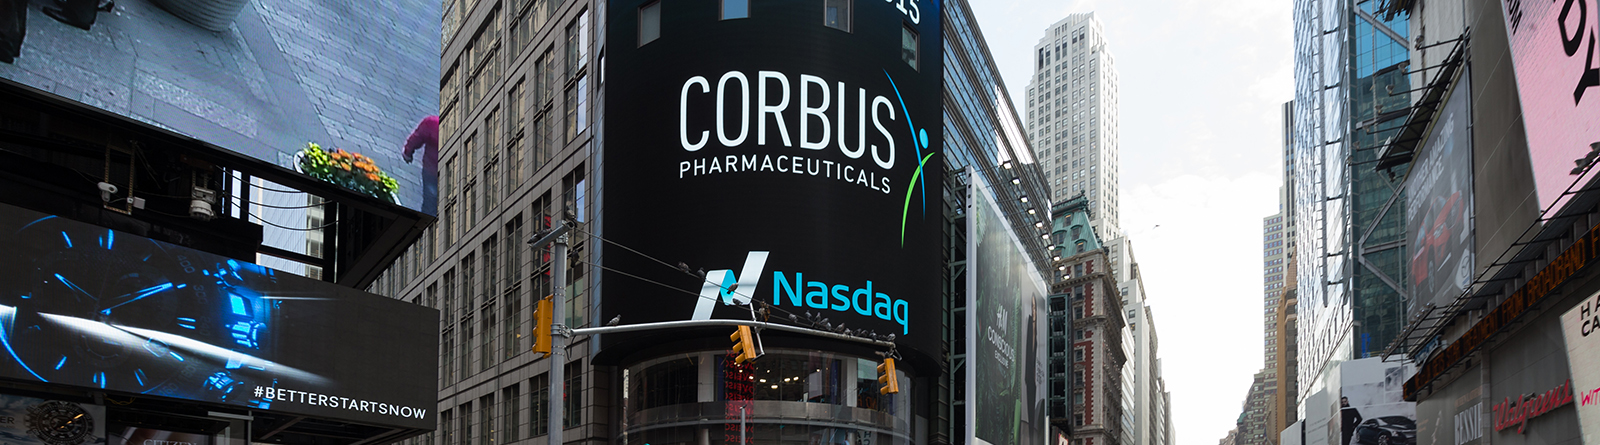 Corbus Pharmaceuticals Reports Fourth Quarter and Year-End 2019 Financial Results Banner